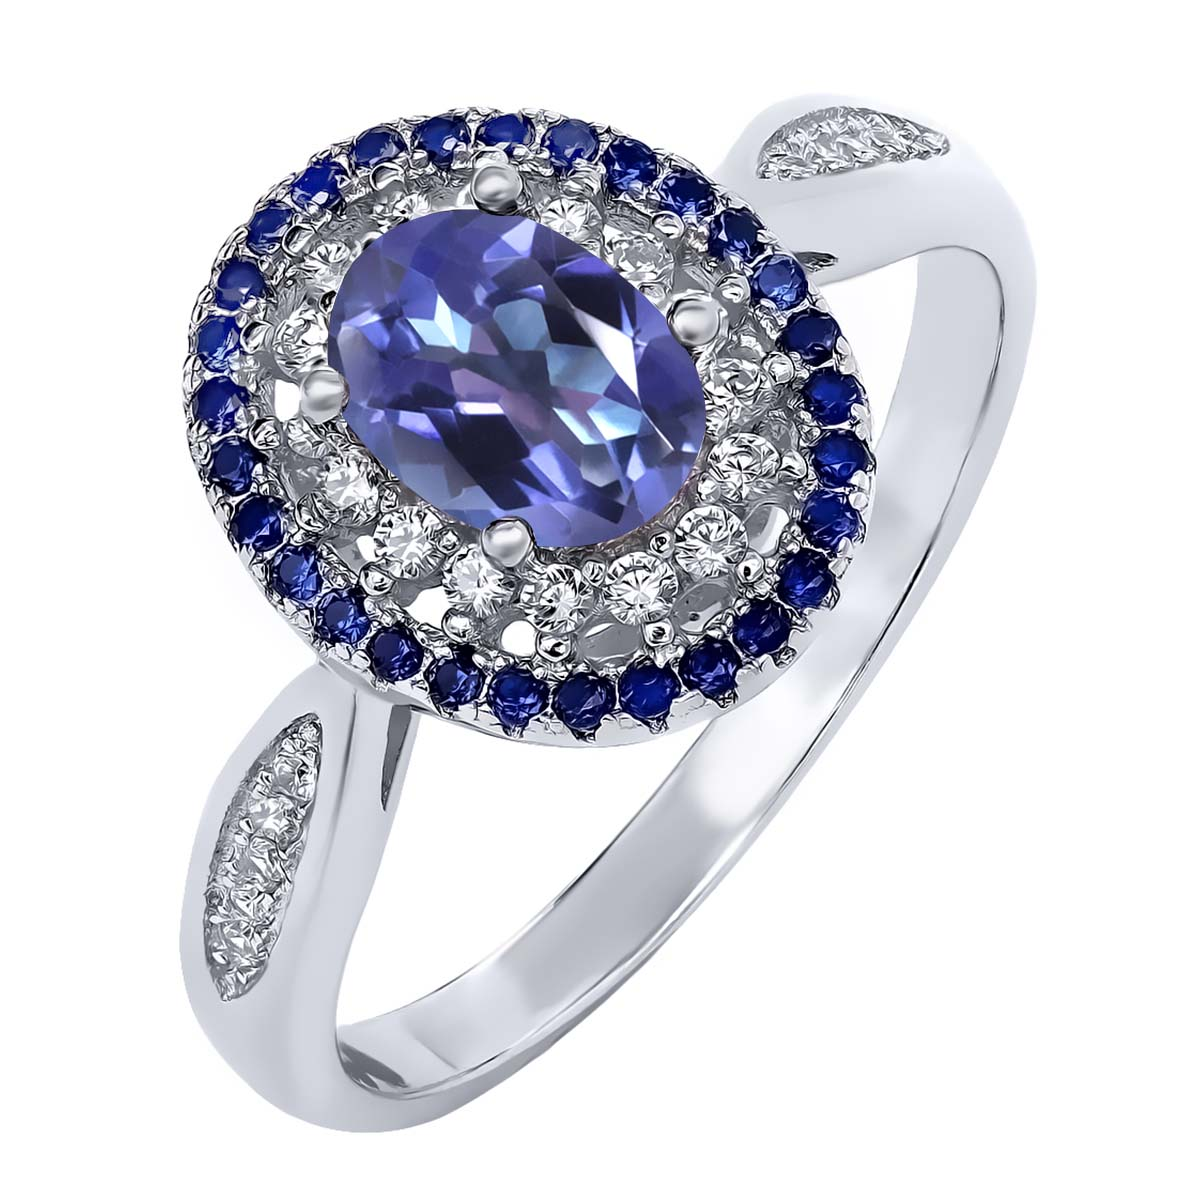 1.55 Ct Oval Purple Blue Mystic Topaz 925 Sterling Silver Ring